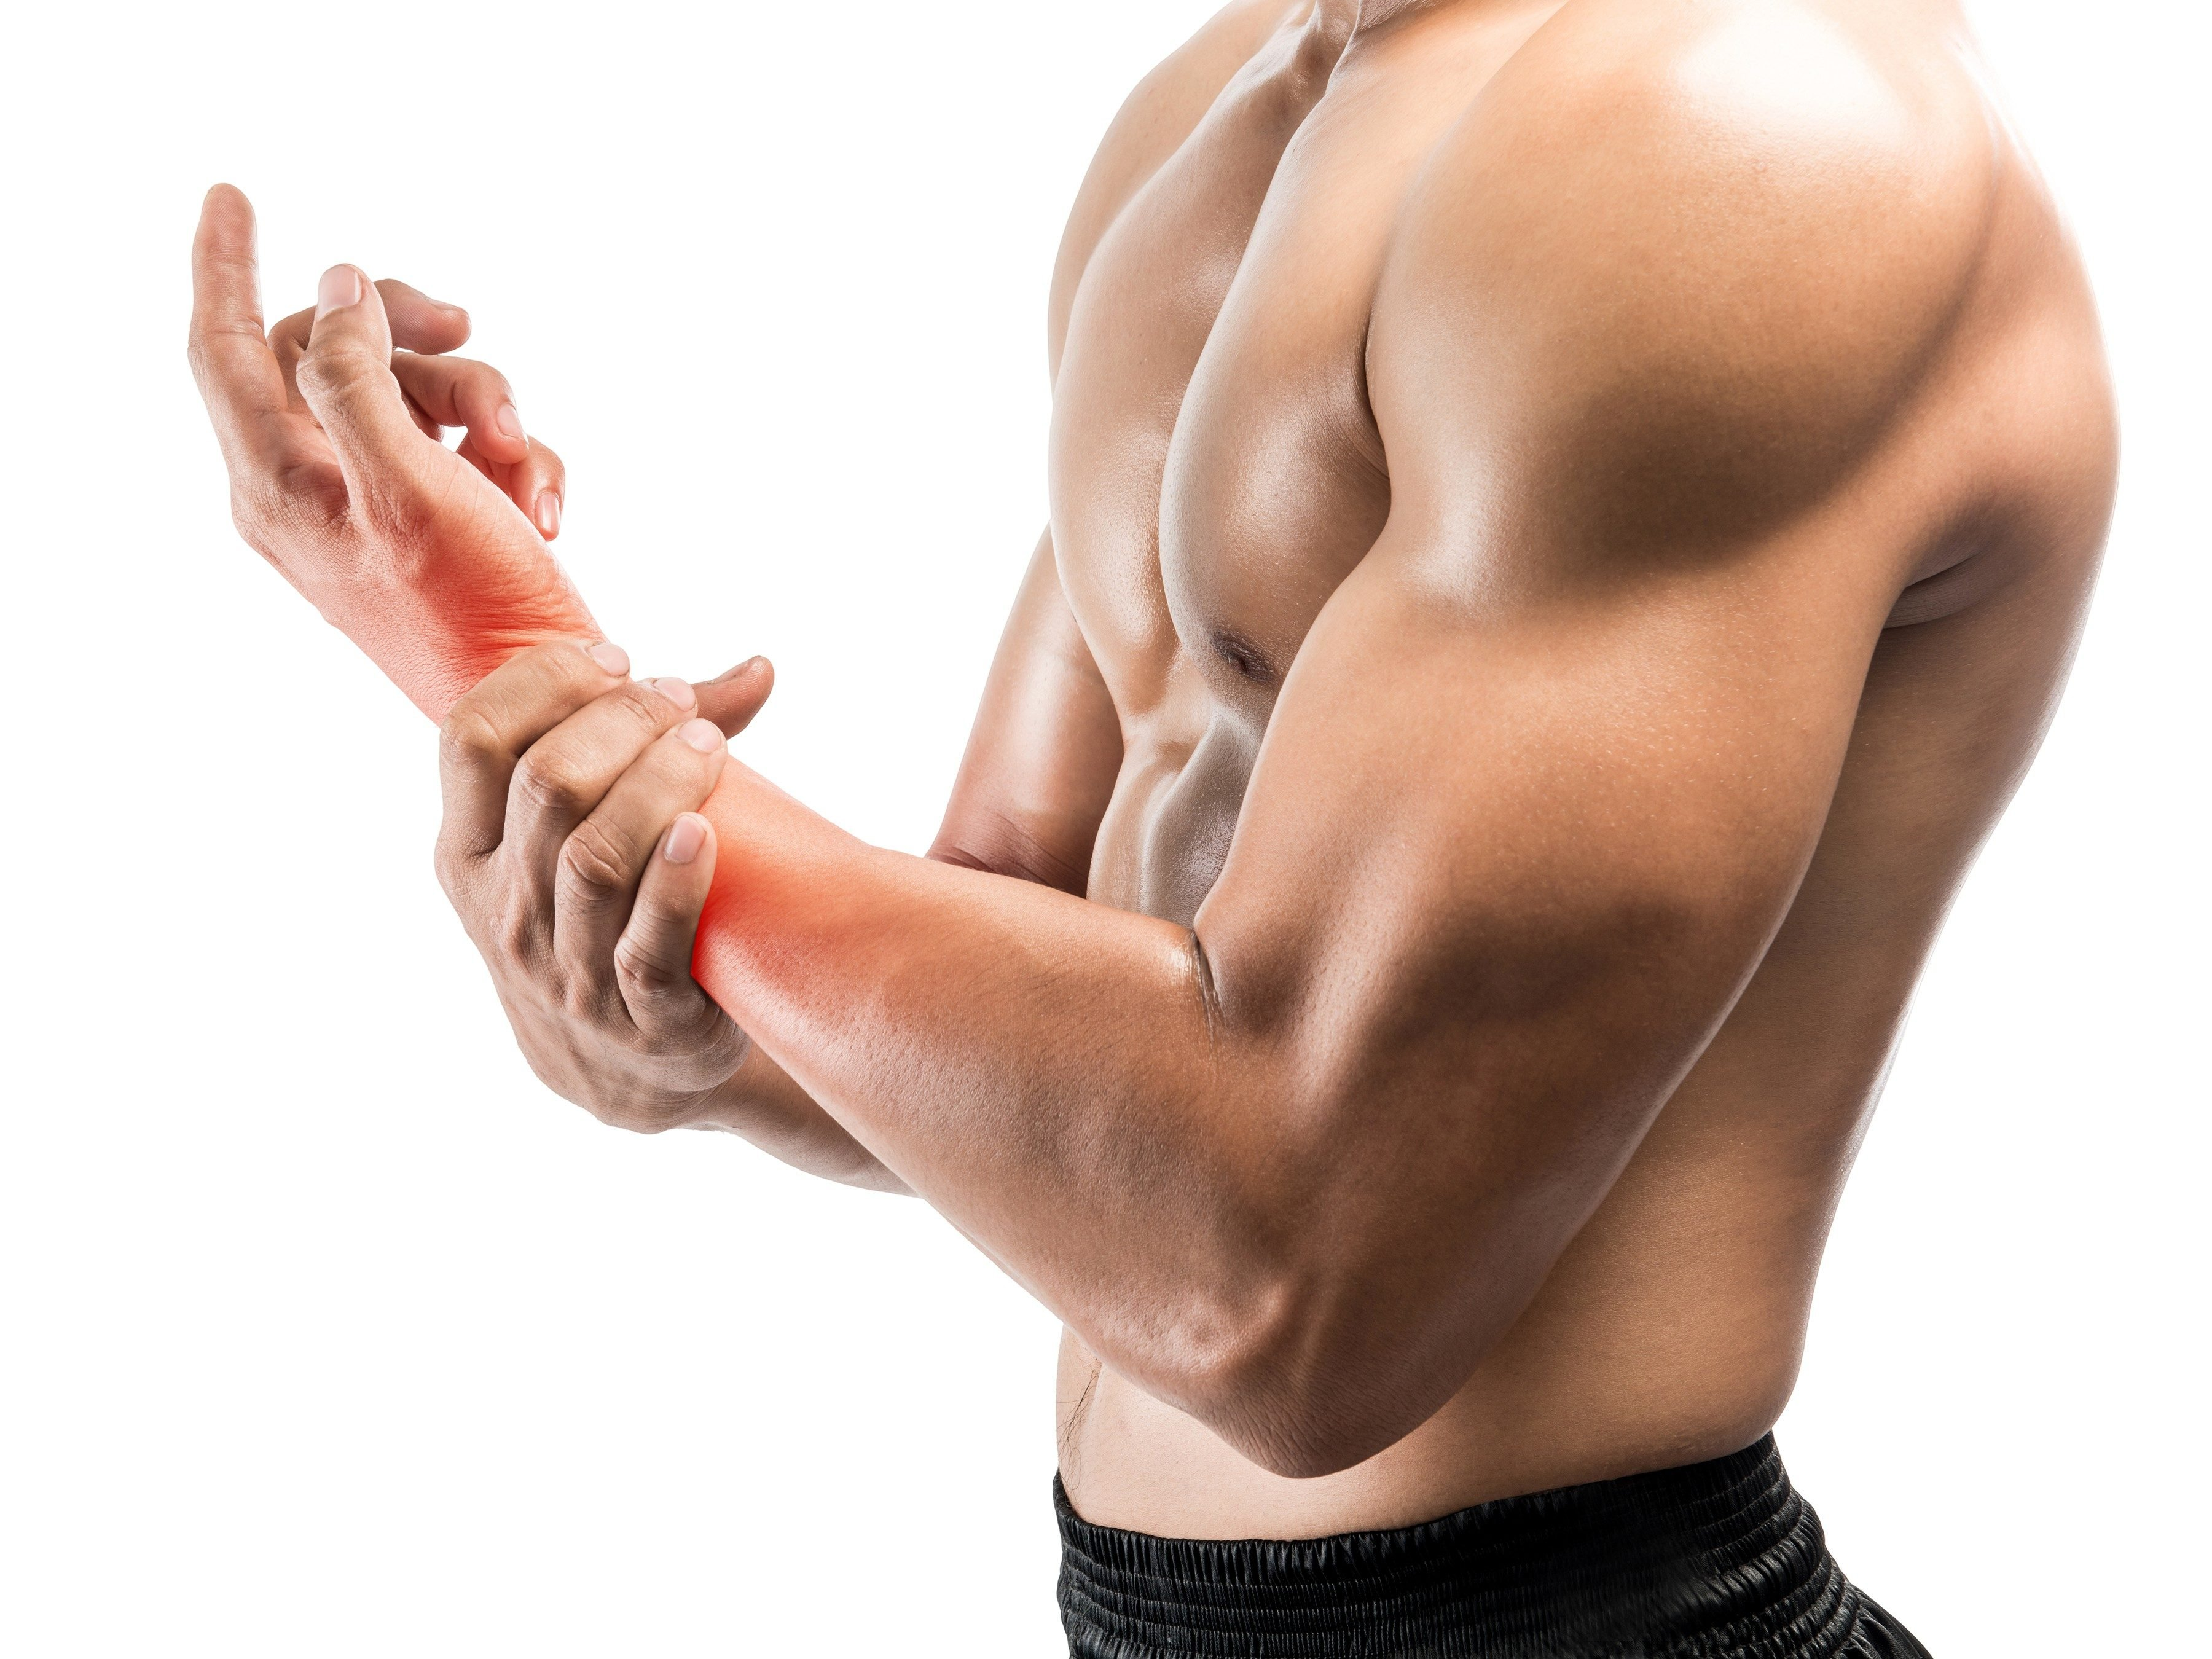 4. Apply a sports cream to sore muscles.